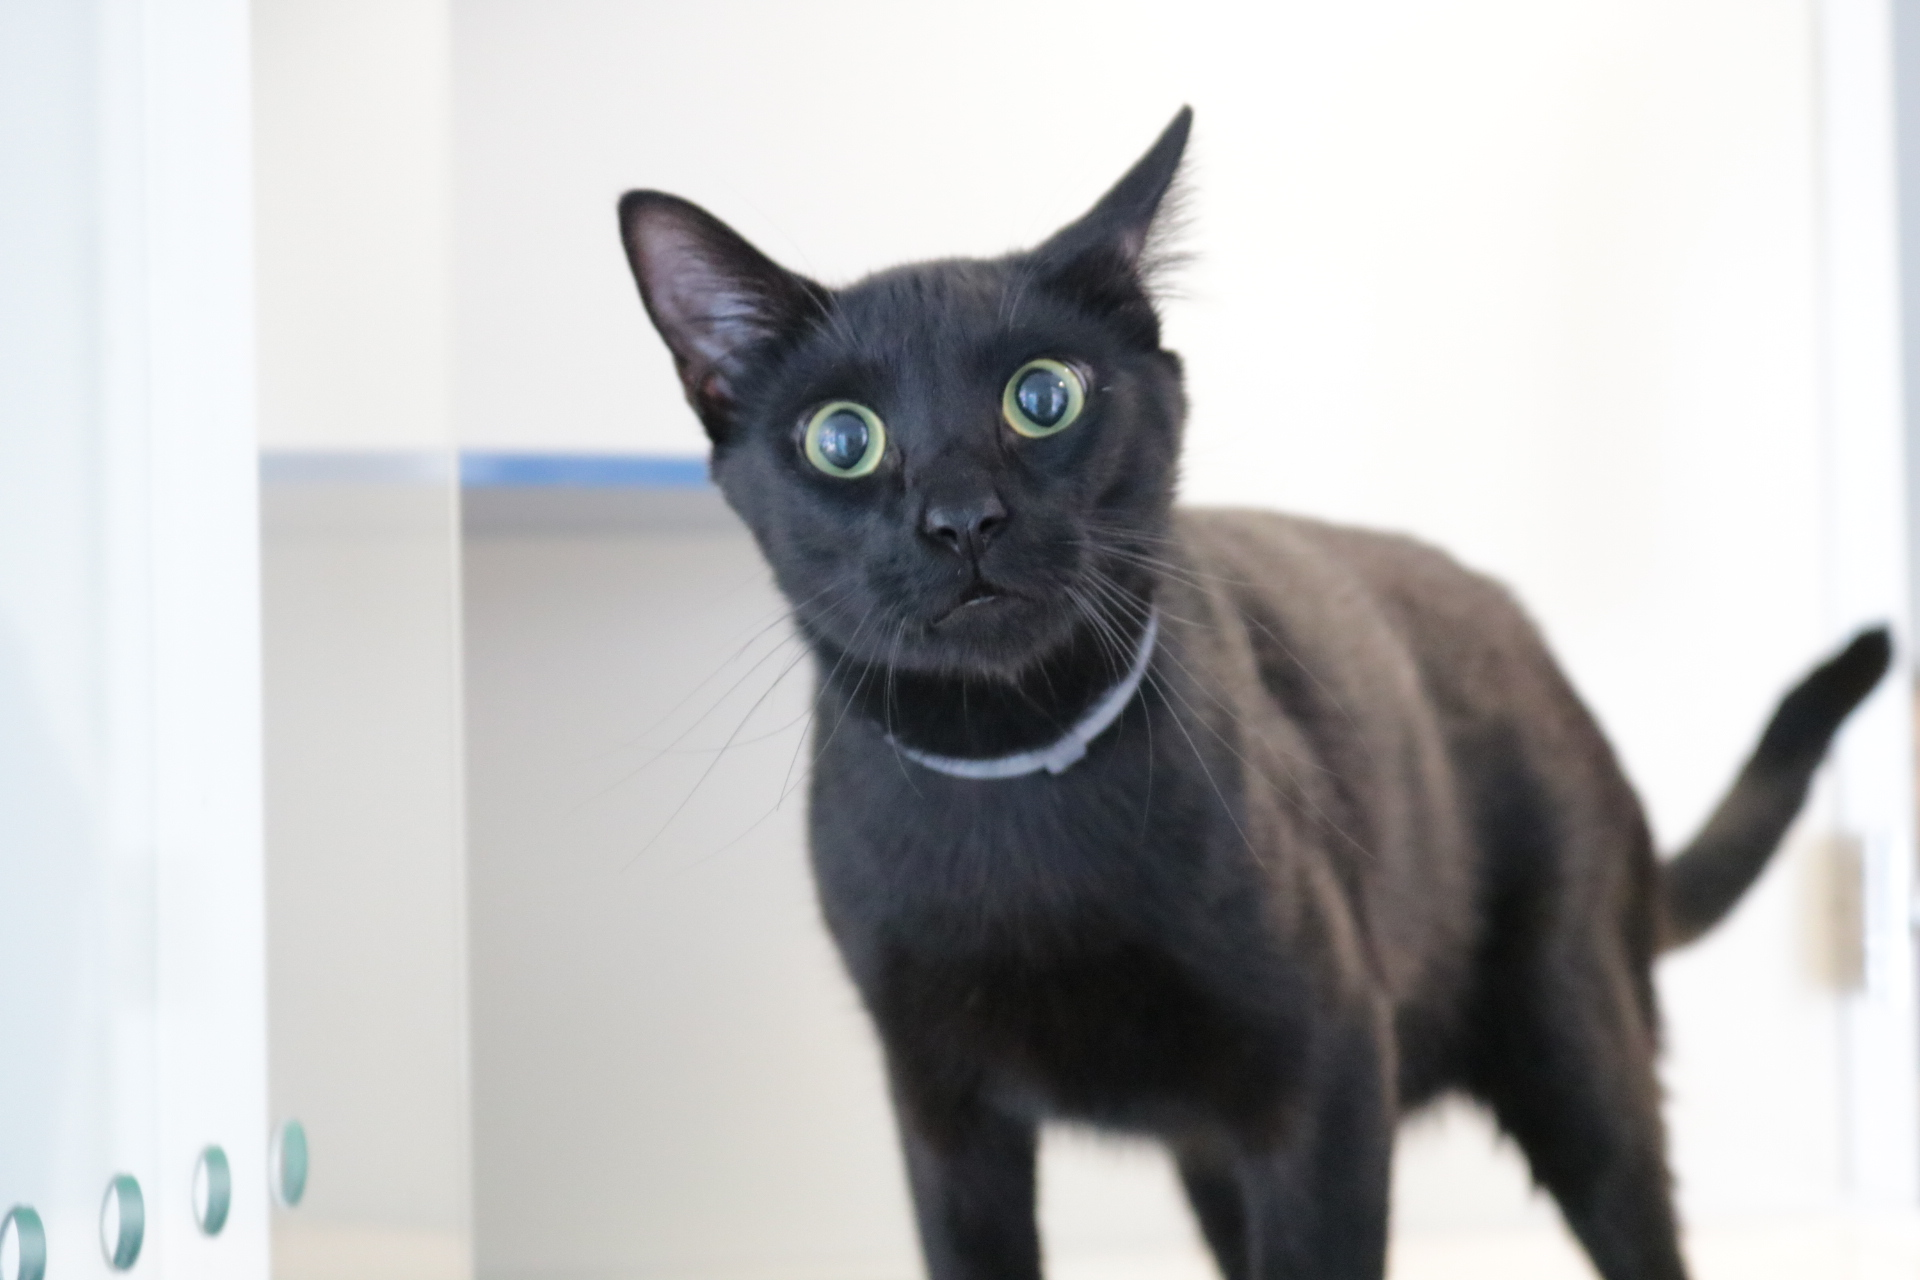 This one is called Bernardo. He's worried he'll get overlooked in a sea of black cats.